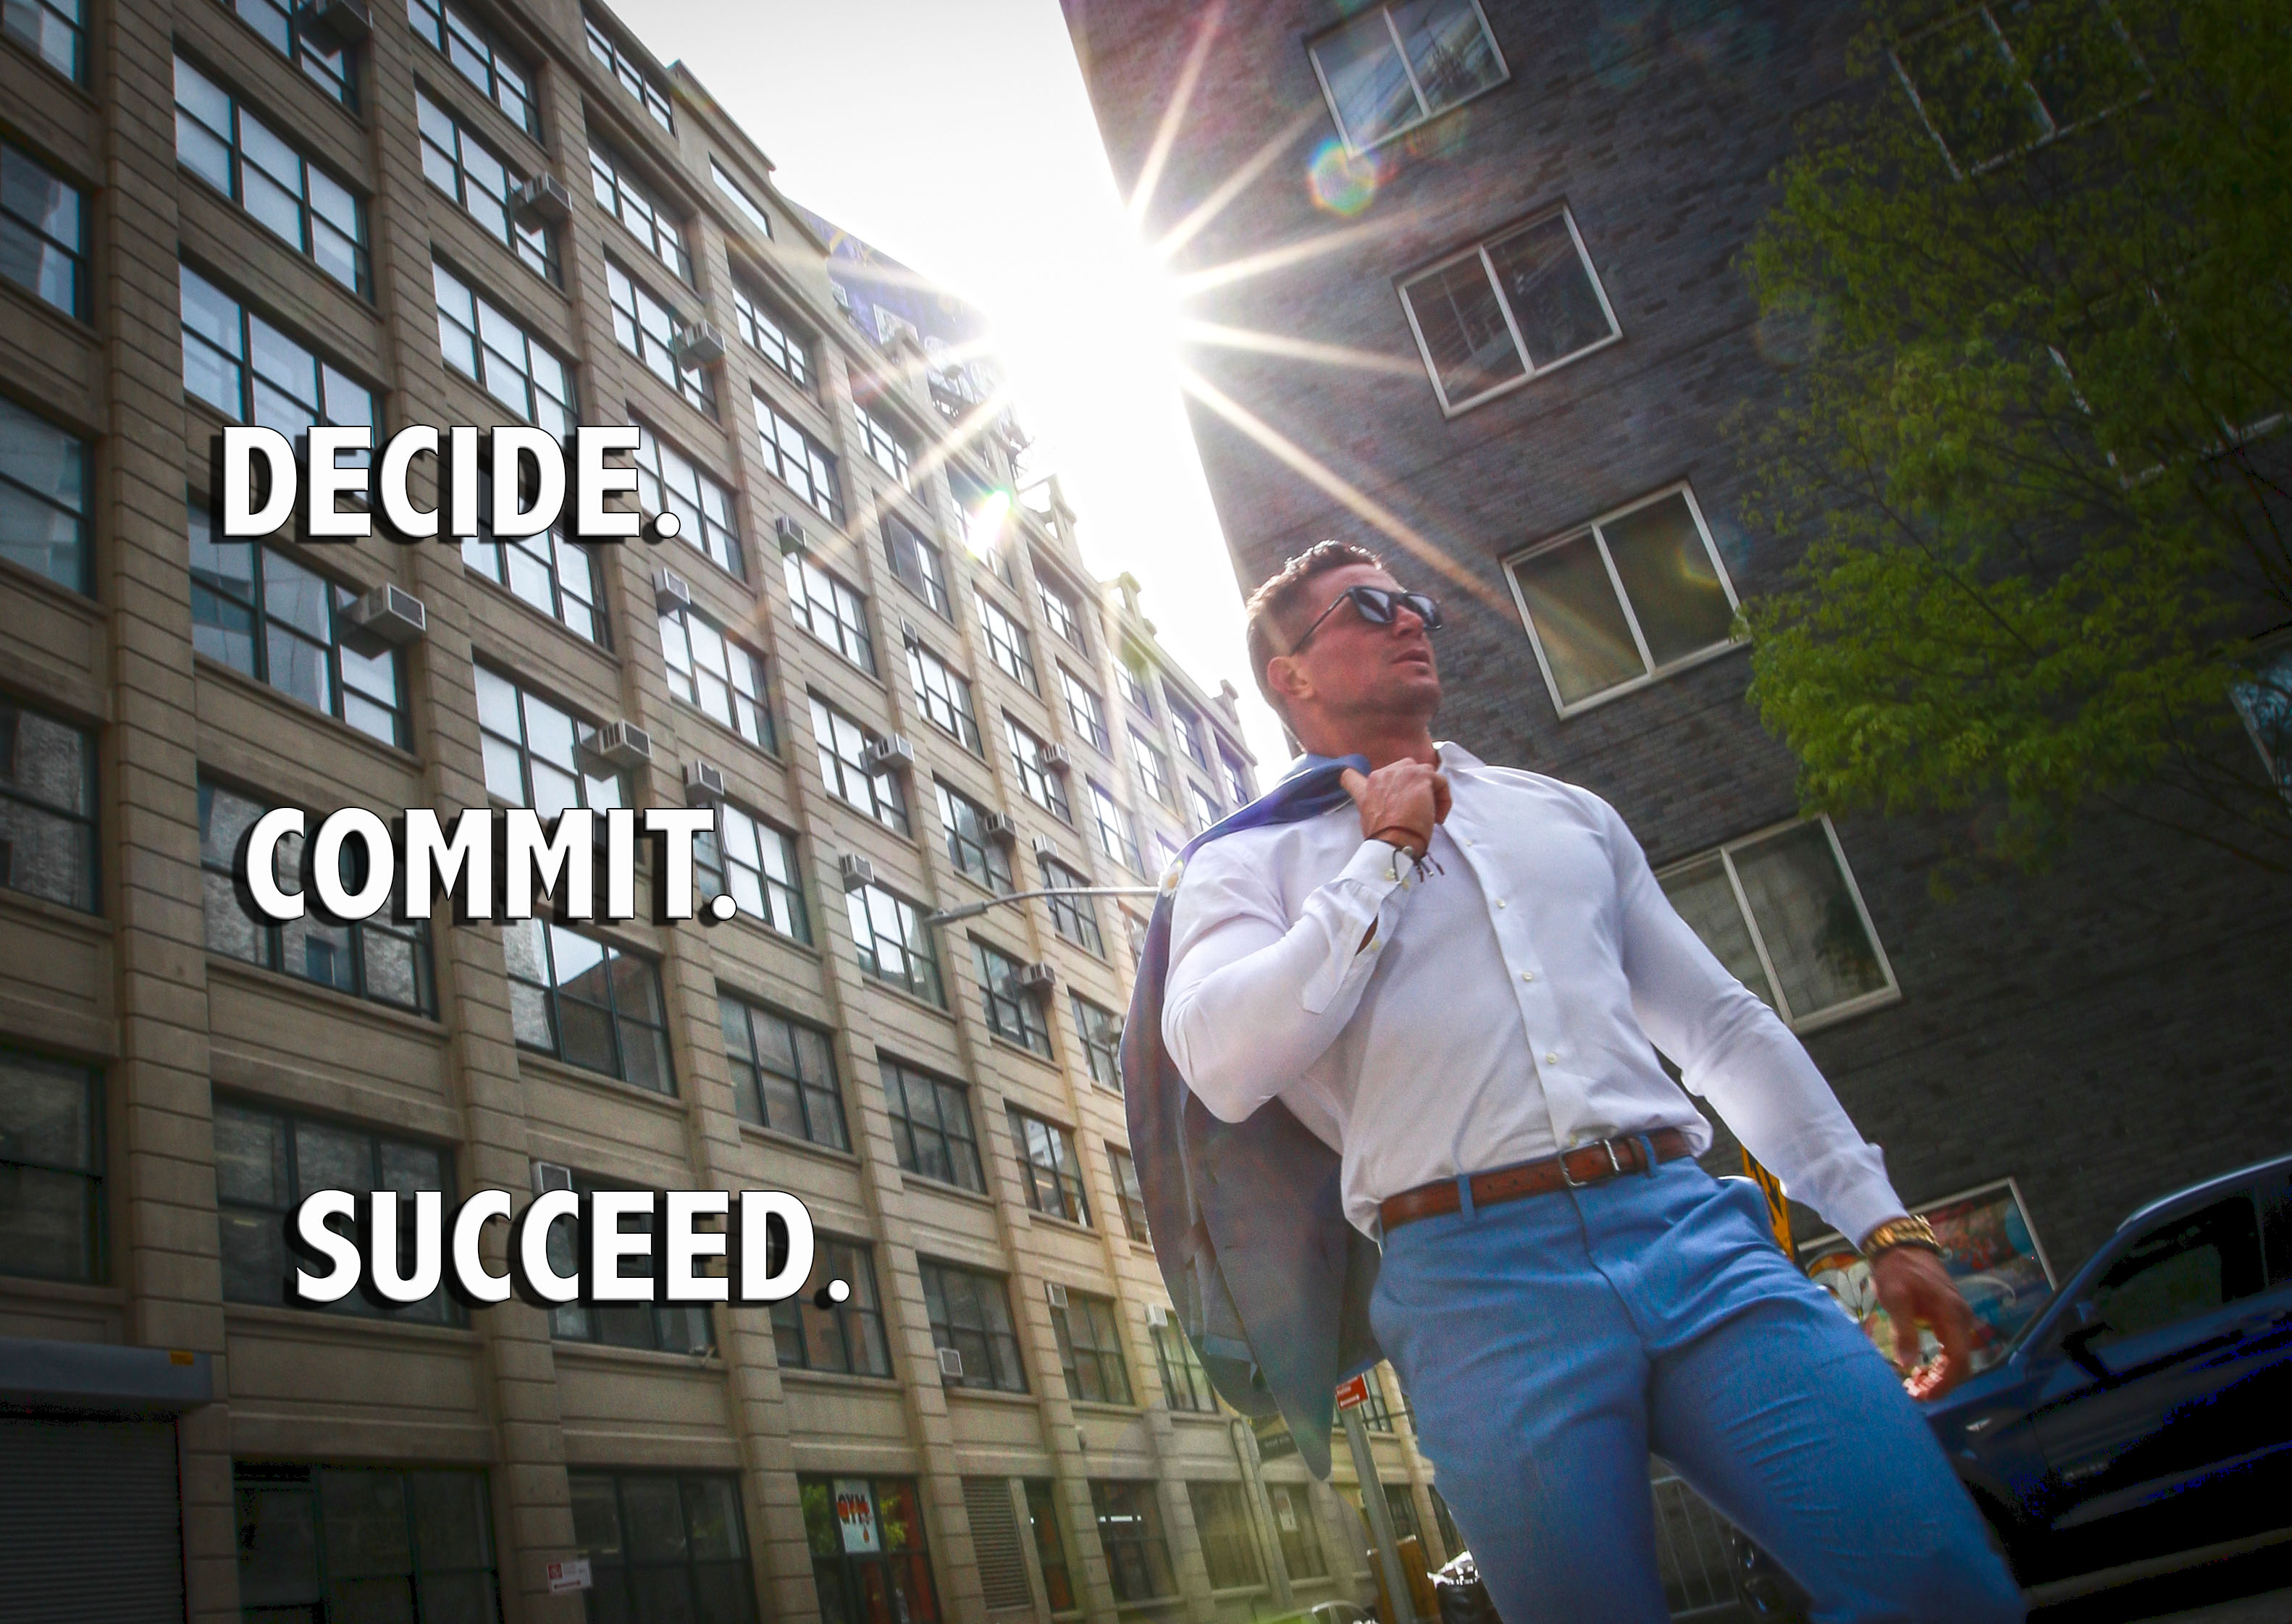 Decide~Commit~Succeed